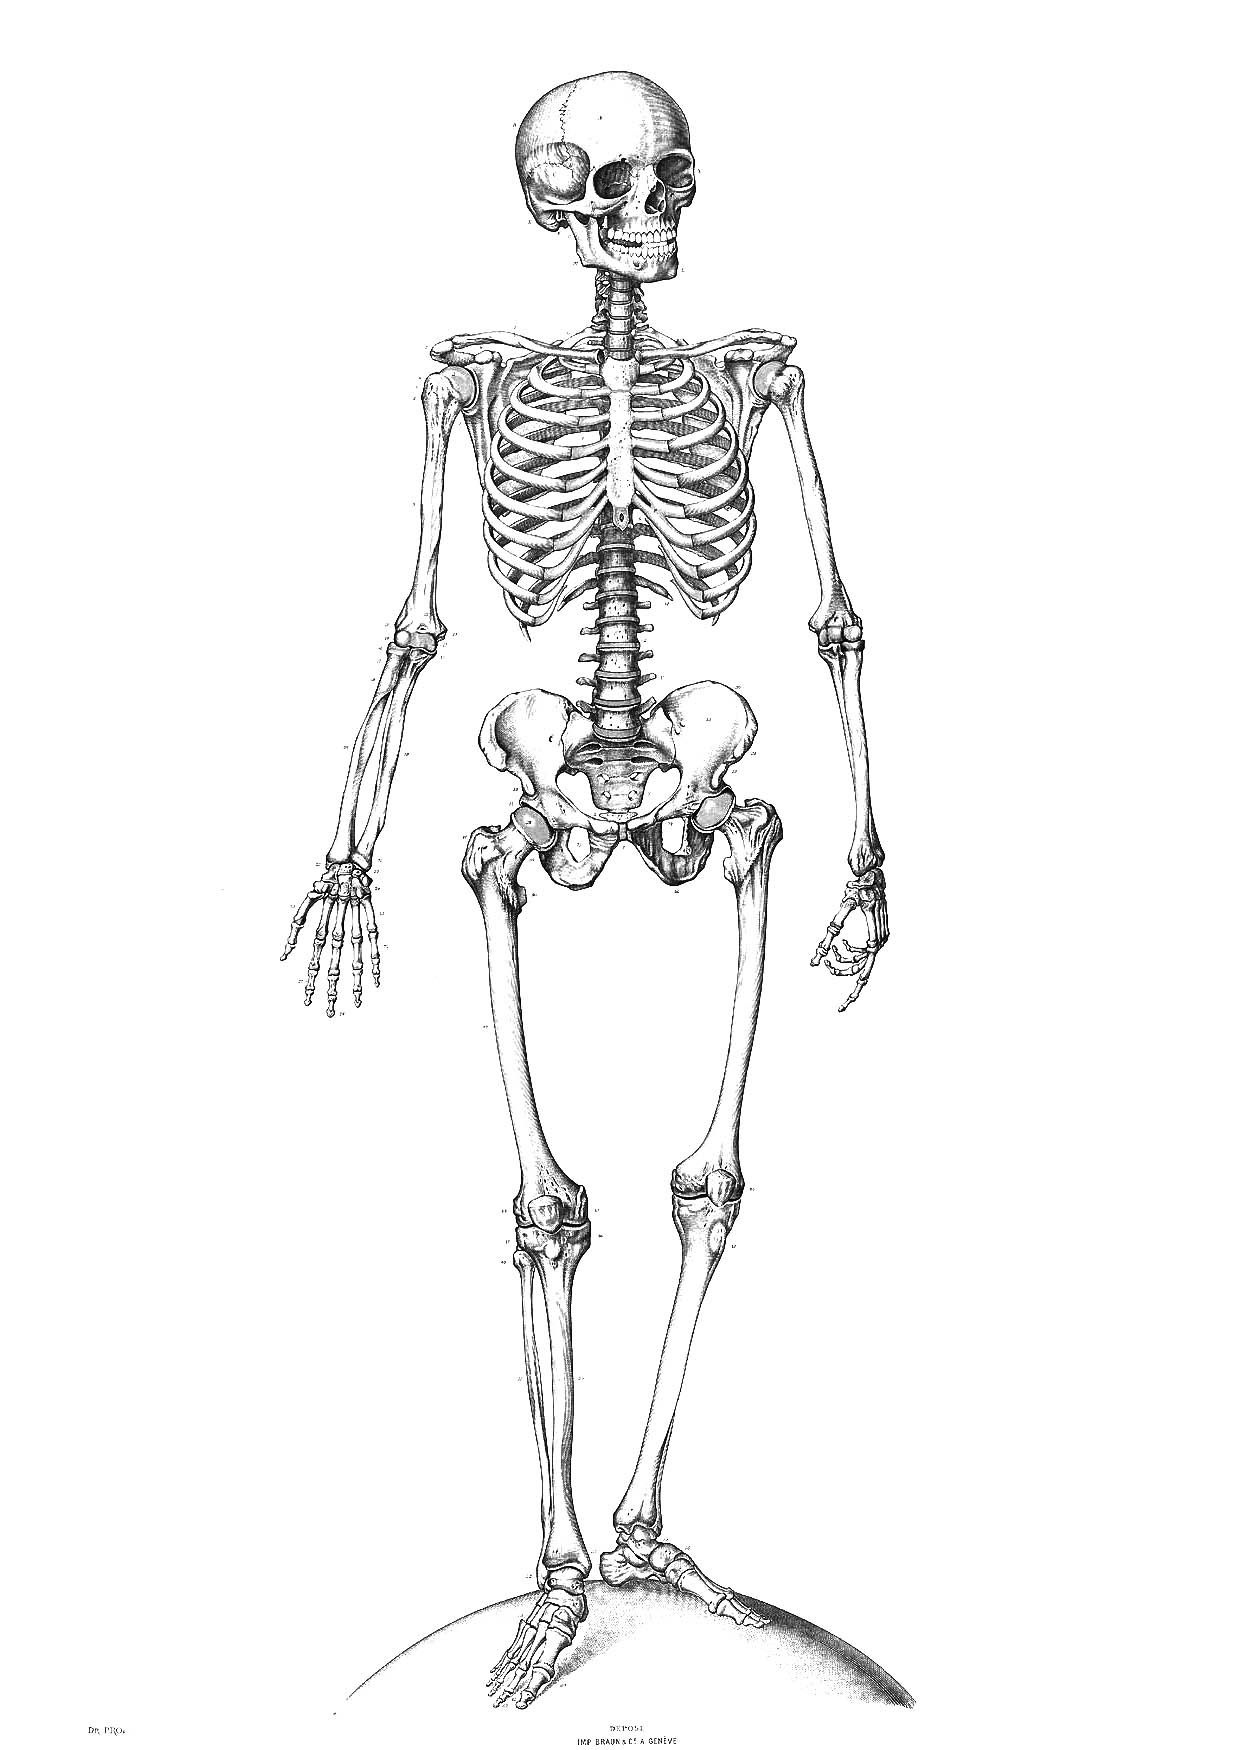 Skeleton Coloring Pages | All For The Kids! | Skeleton Drawings - Free Printable Skeleton Coloring Pages